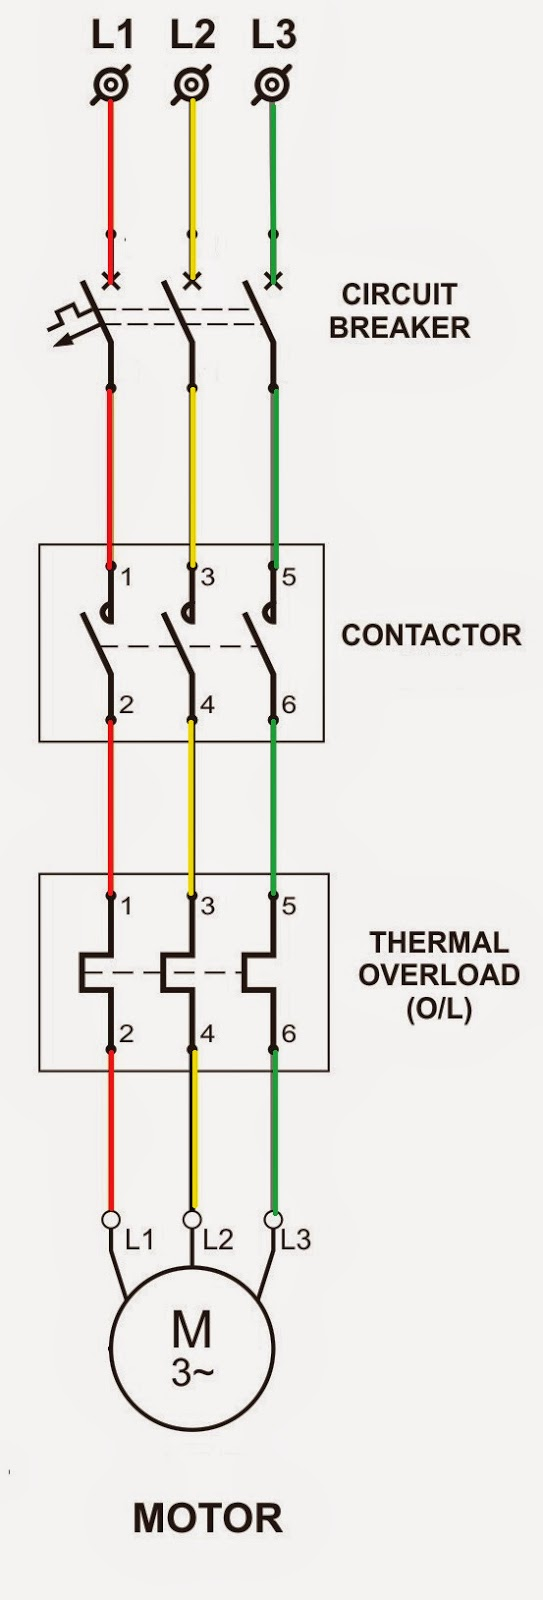 Wiring diagram of dol wiring diagram of dol electrical standards direct online dol starter asfbconference2016 Image collections